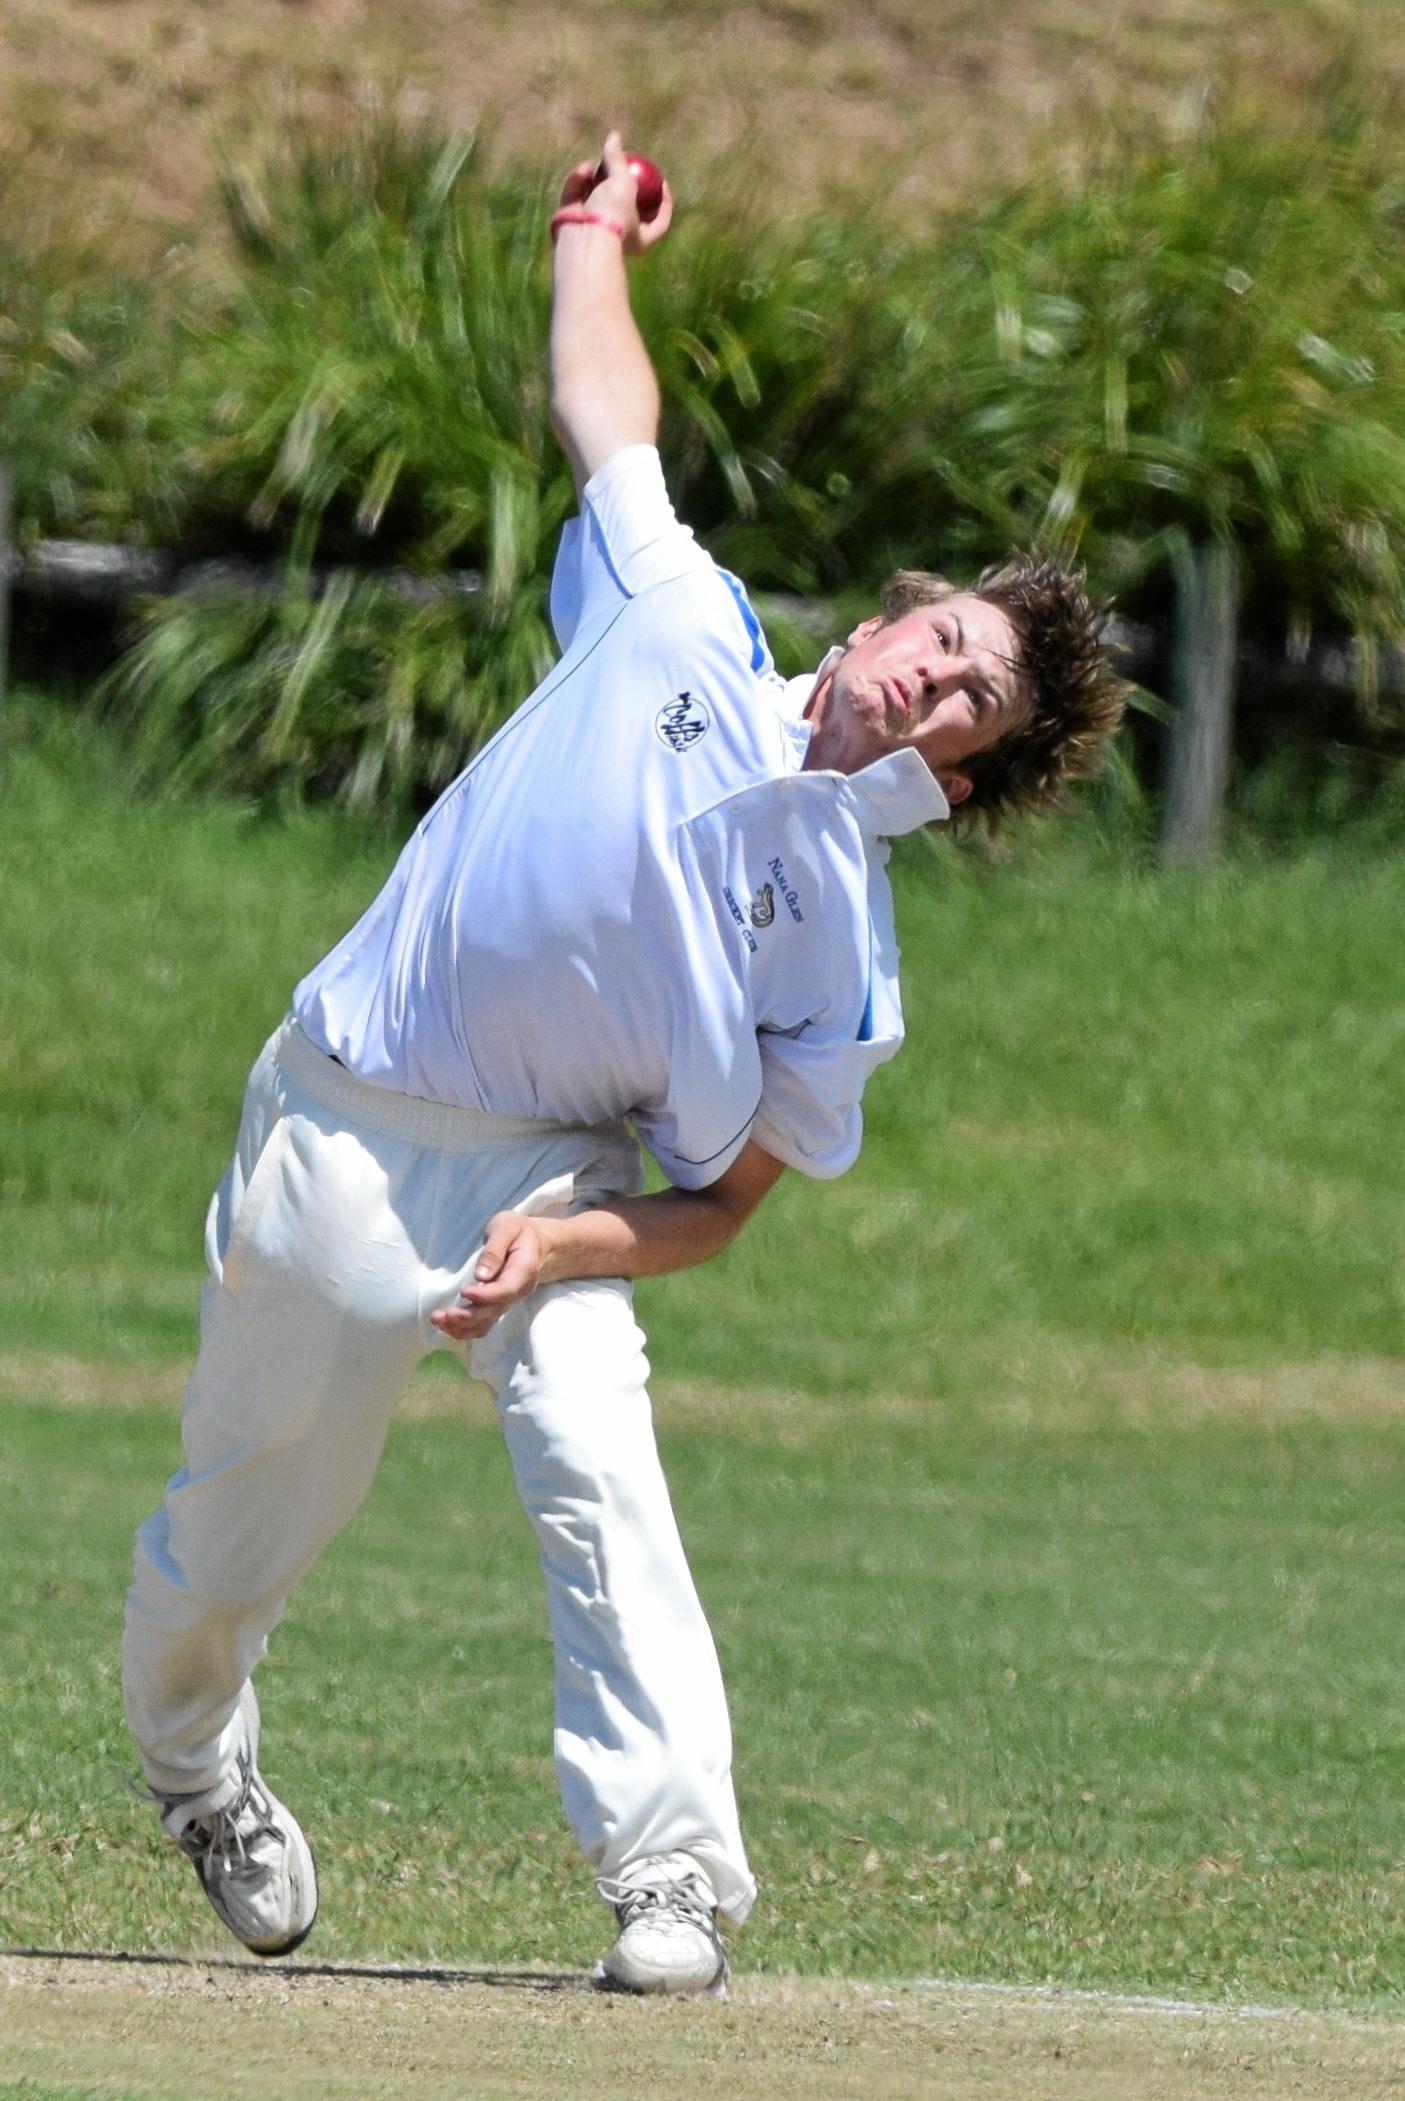 RIPPED IN: Josh Bartlett claimed four late wickets to put Nana Glen in a strong position against Sawtell in the CHDCA grand final replay.